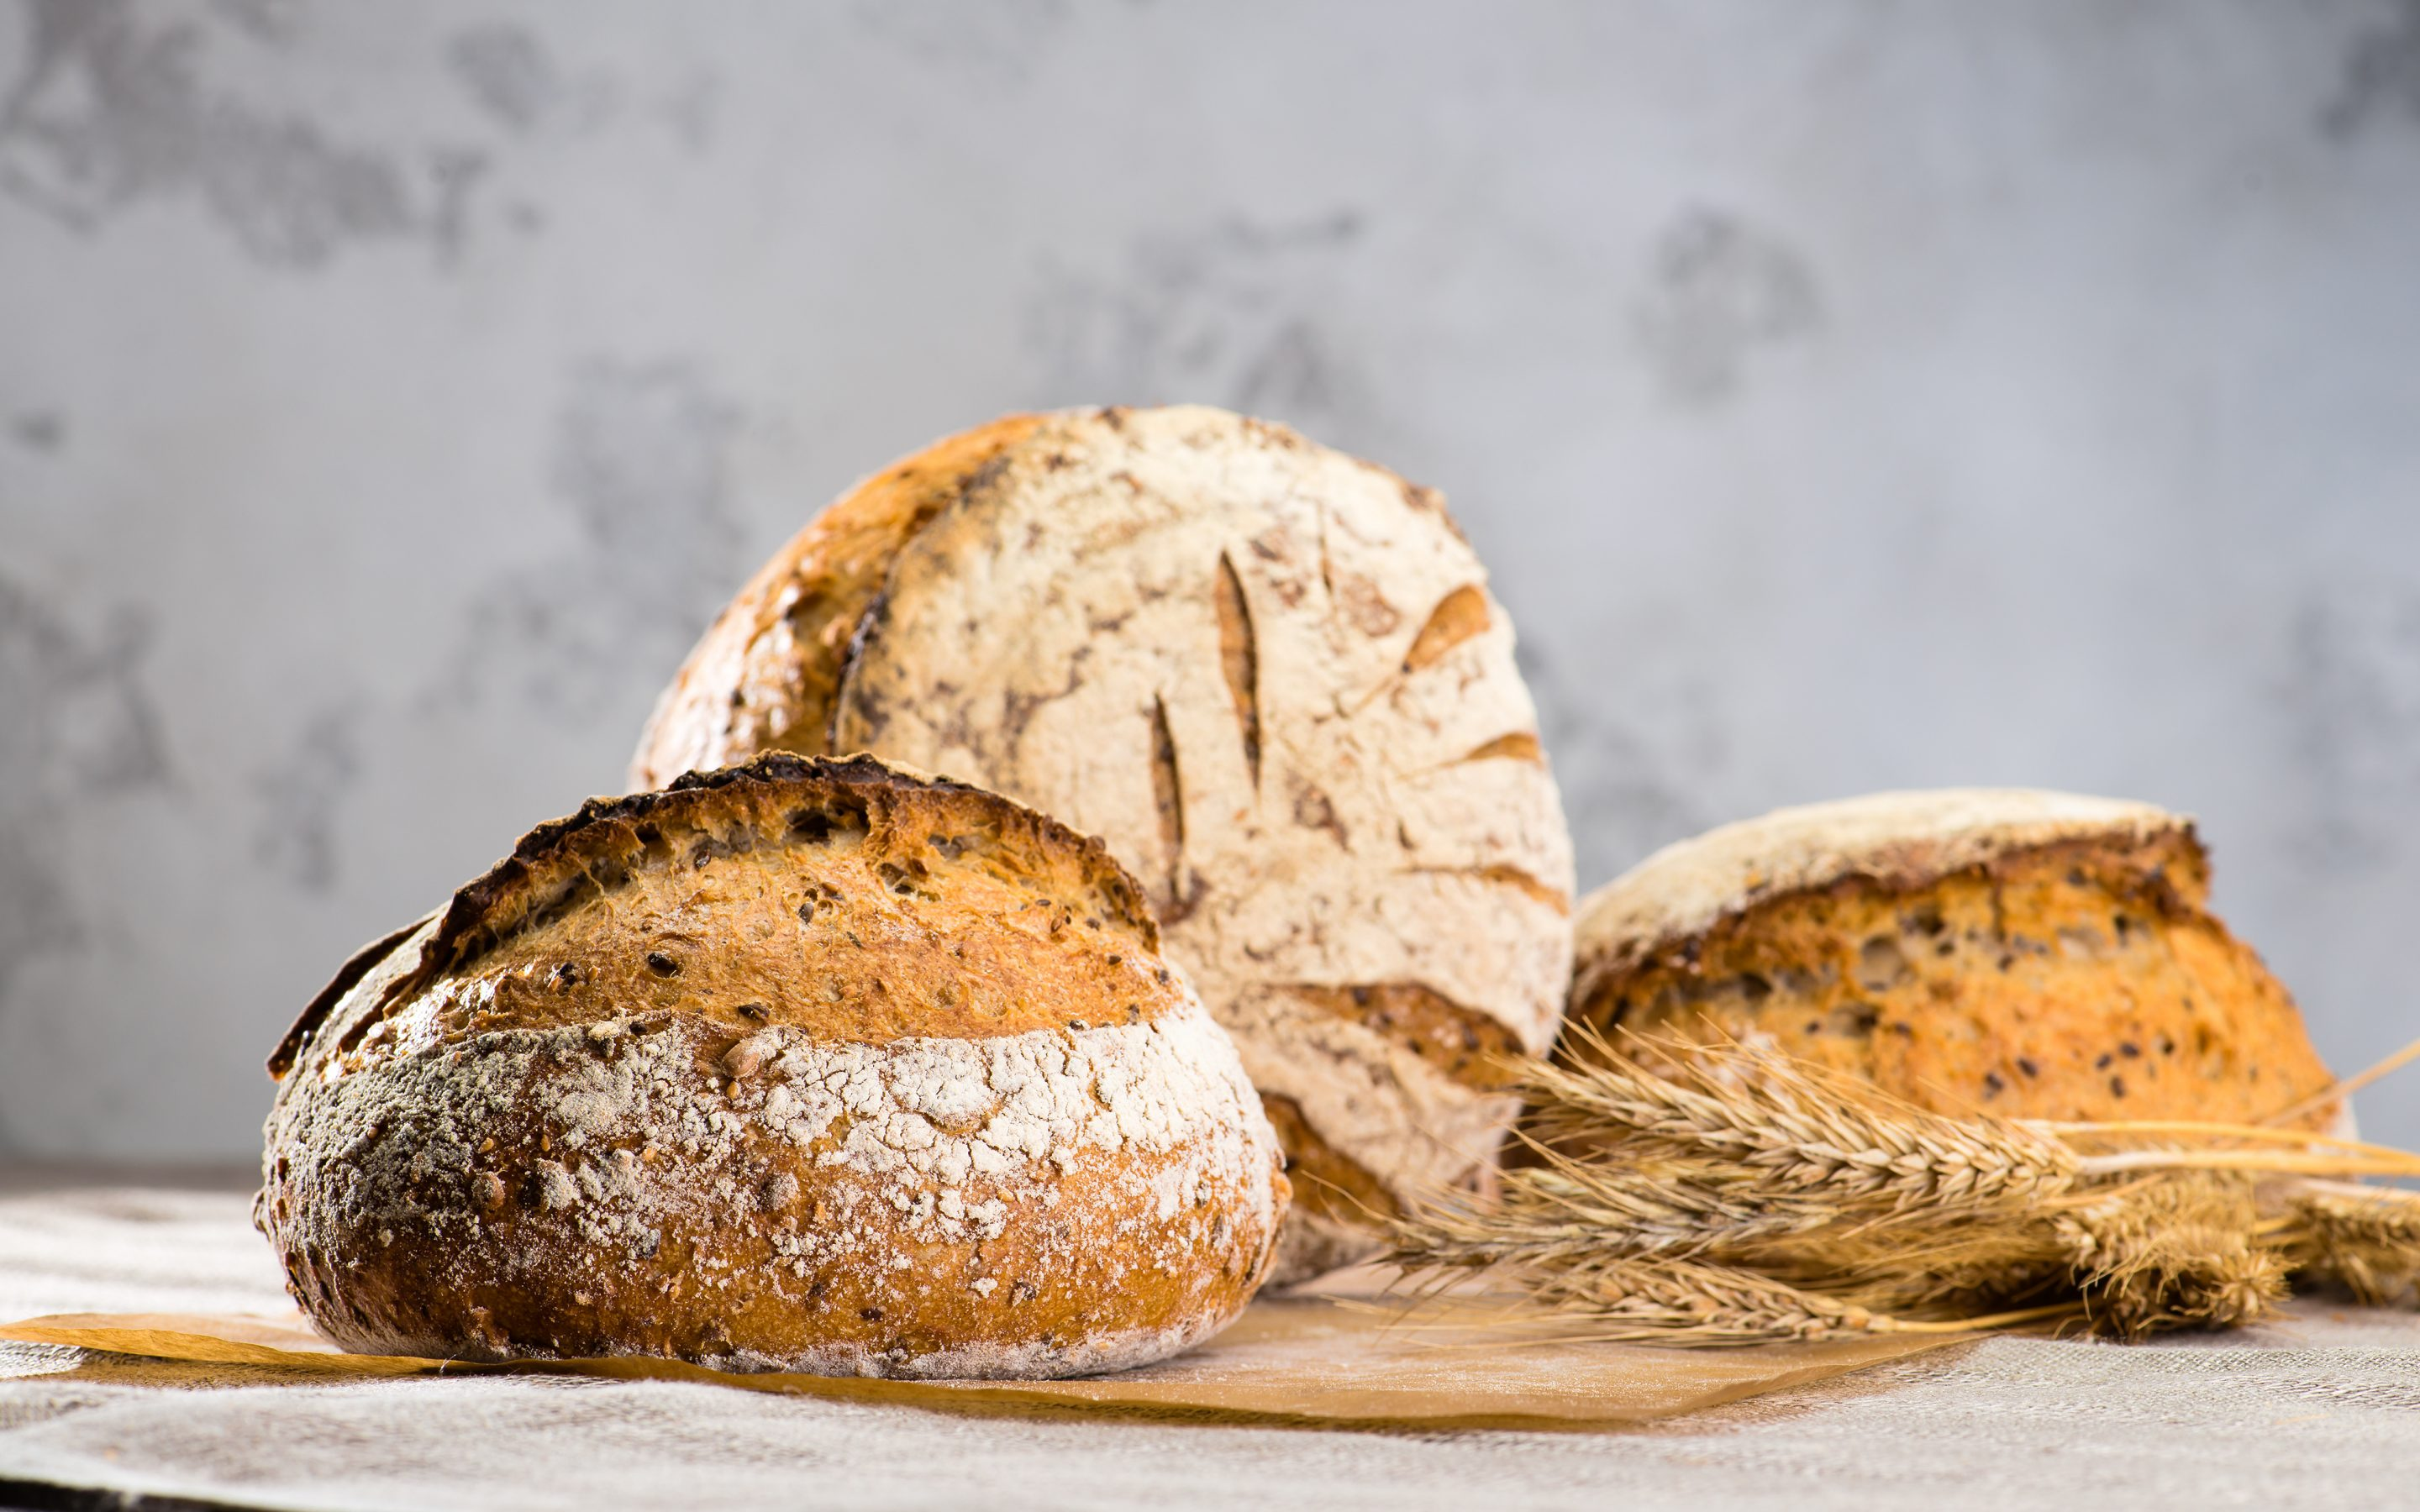 still life with a traditional round artisan rye bread loaves with walnut and seeds on wooden cutting board, near the wheat